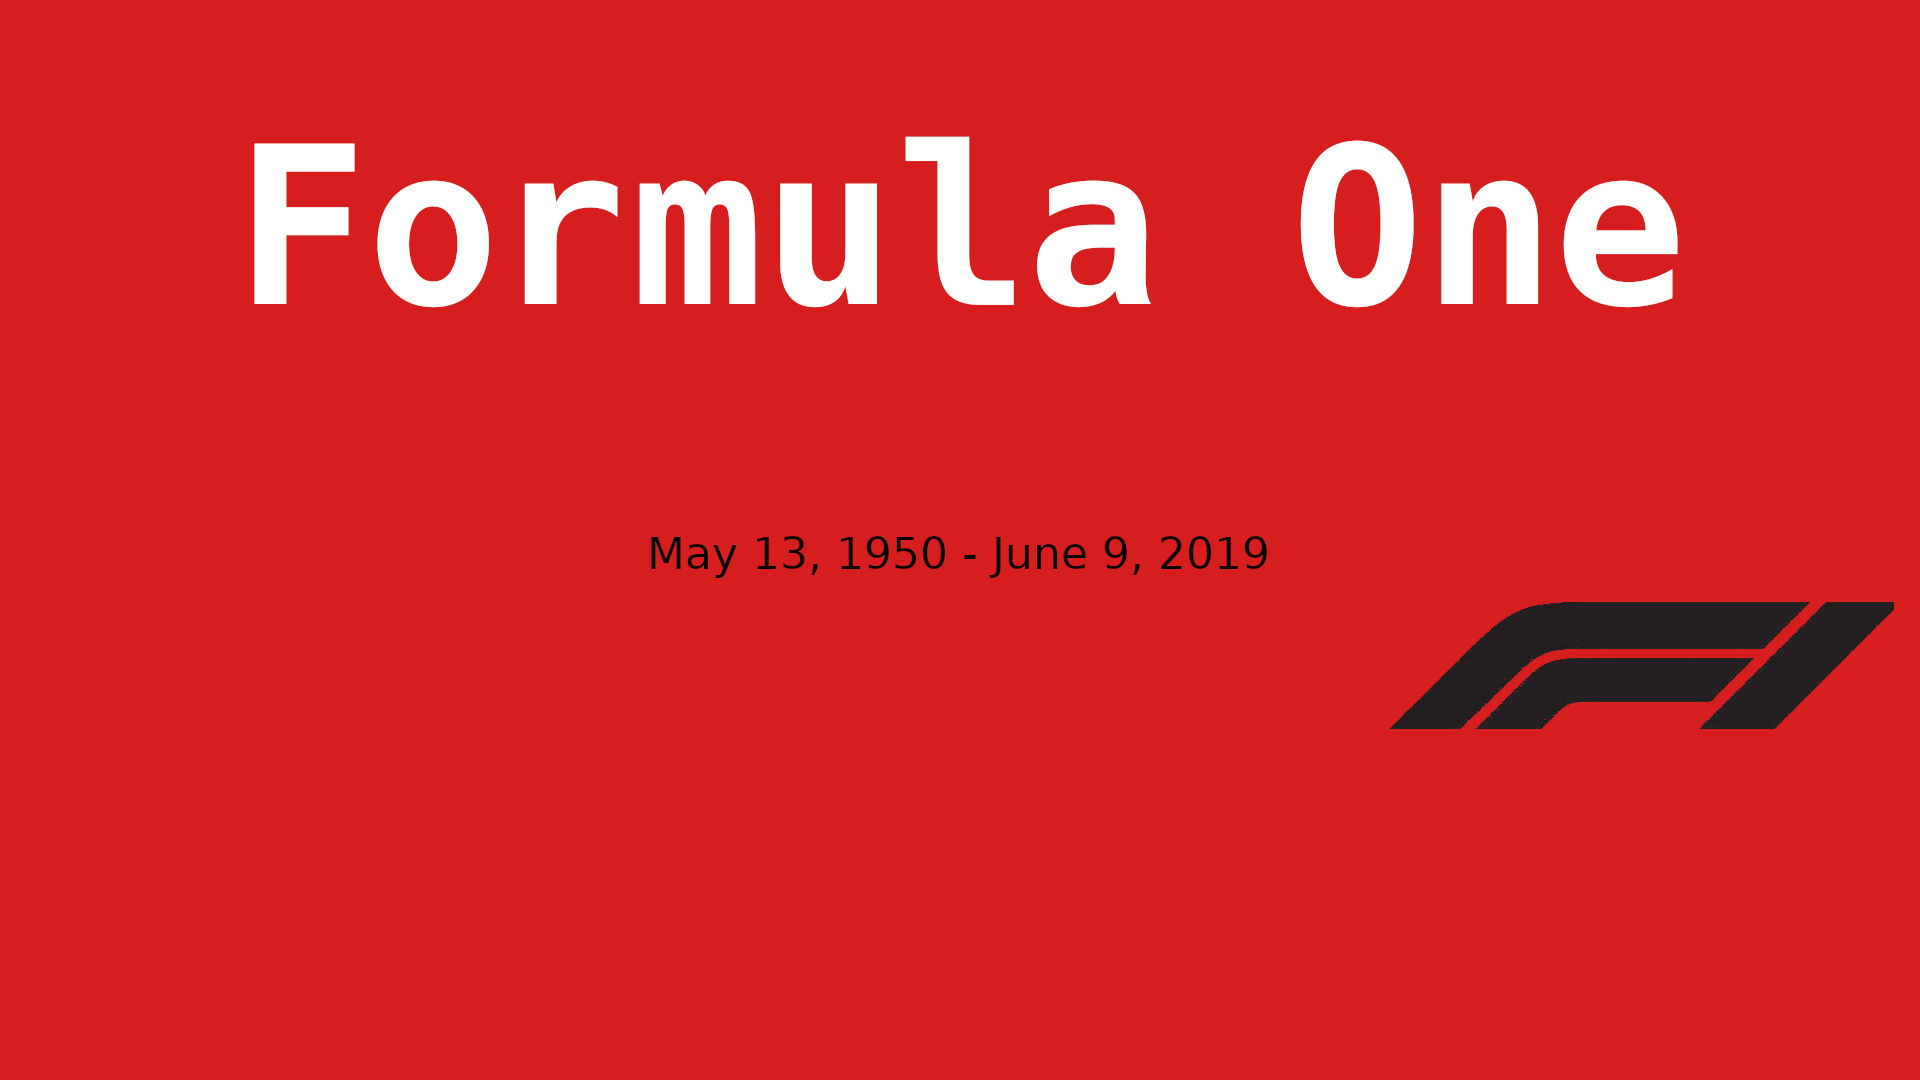 FORMULA ONE DIED, 69 years old at June 9 2019